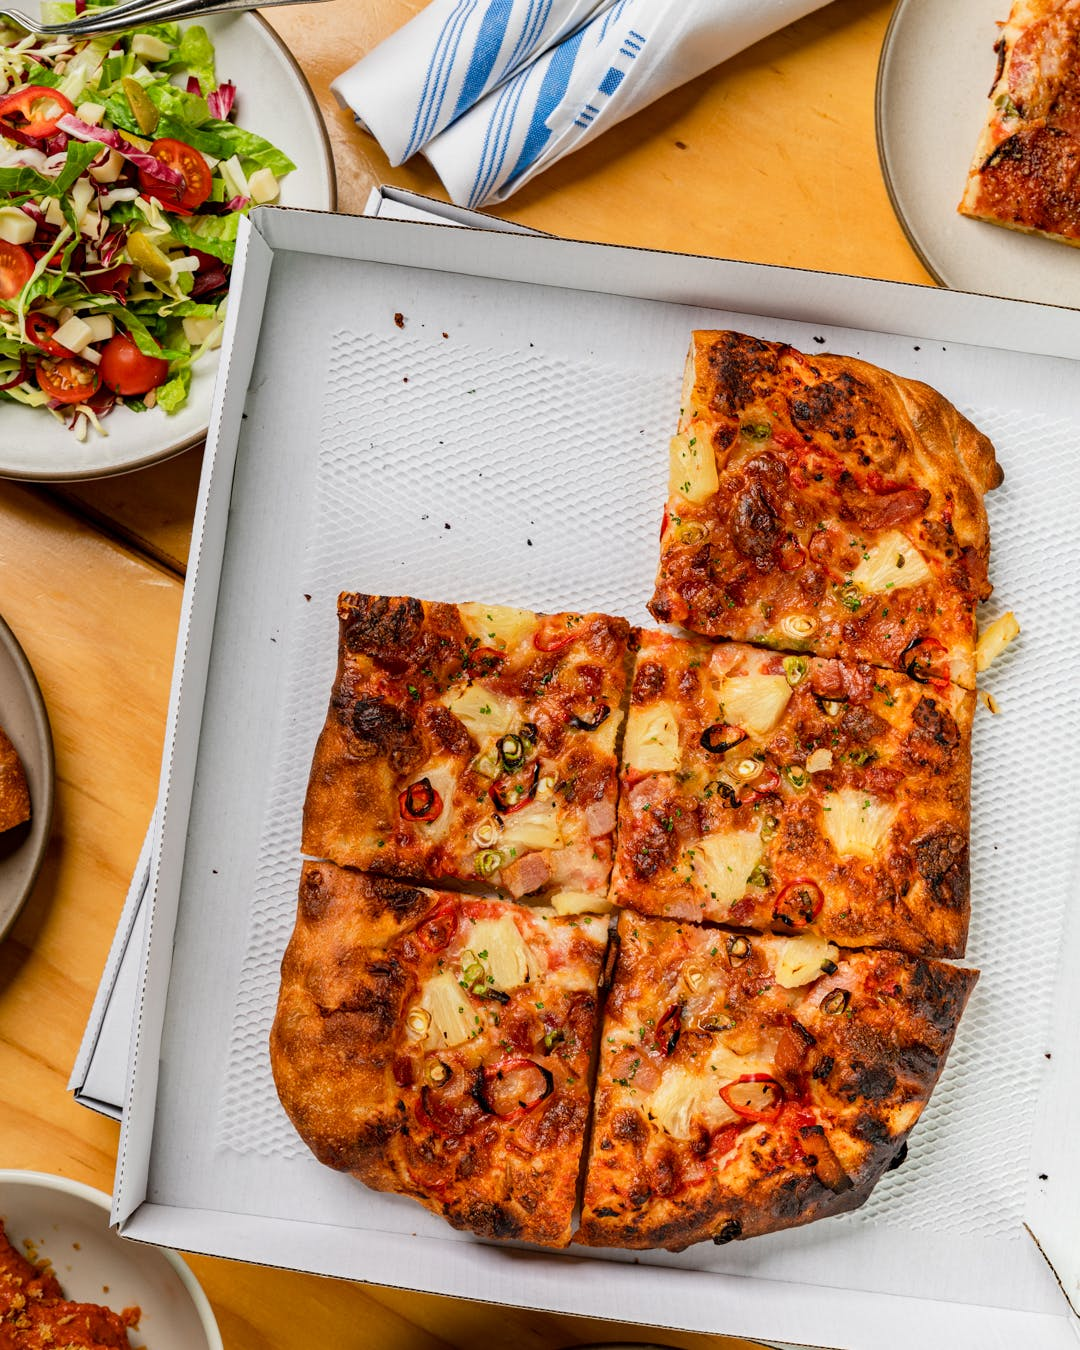 a plate of food with a slice of pizza in a box